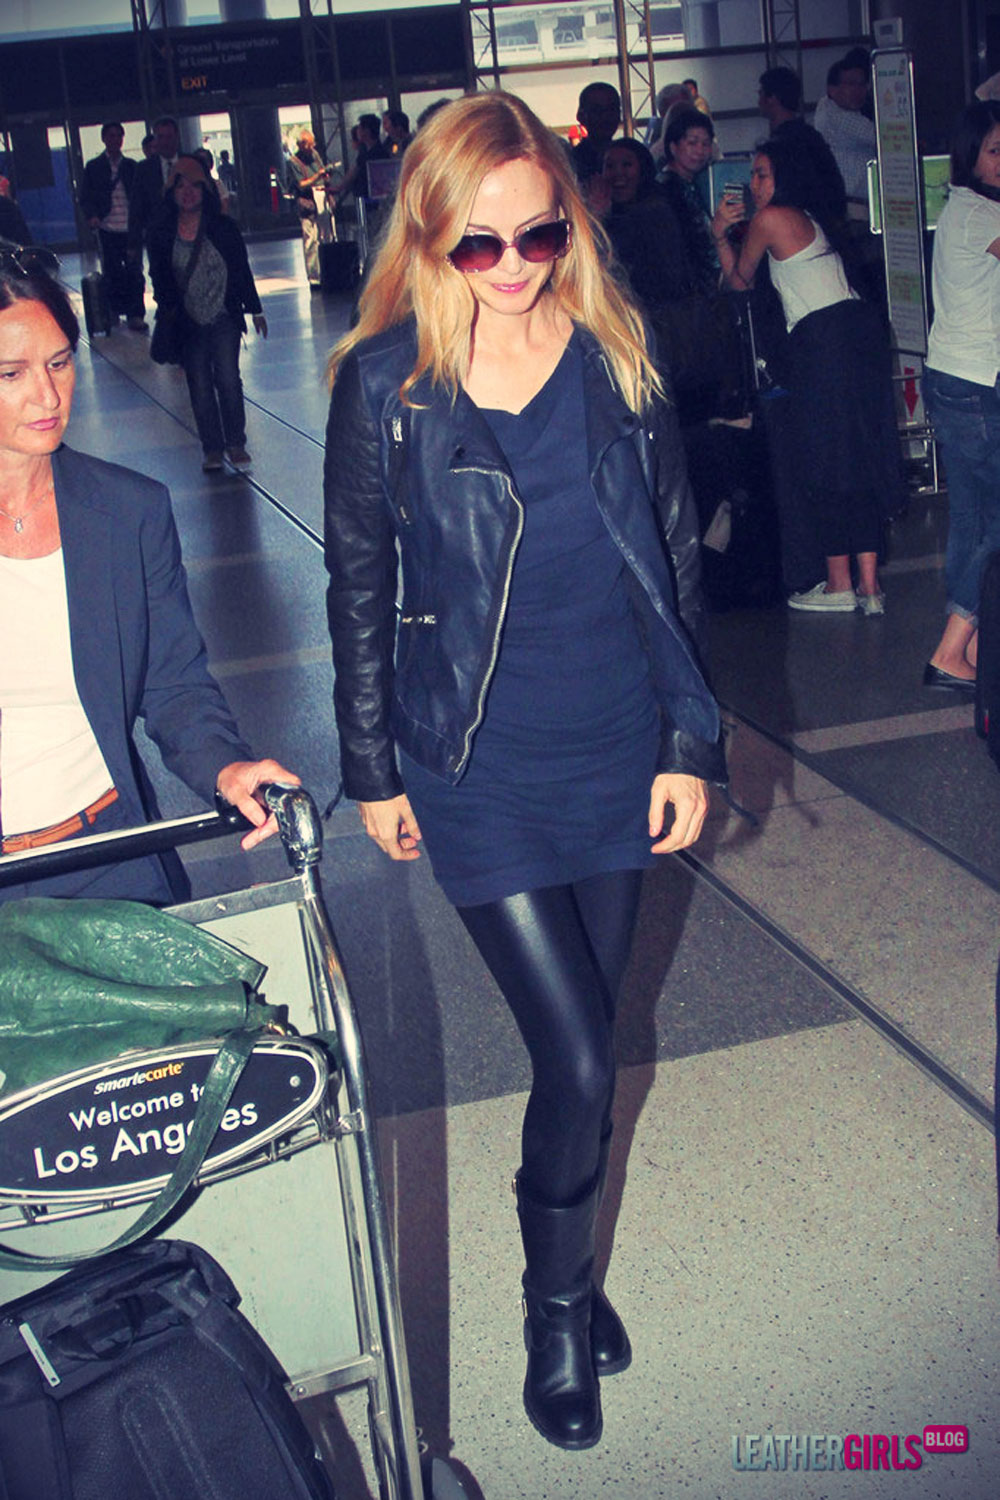 Heather Graham makes her way through the LAX airport